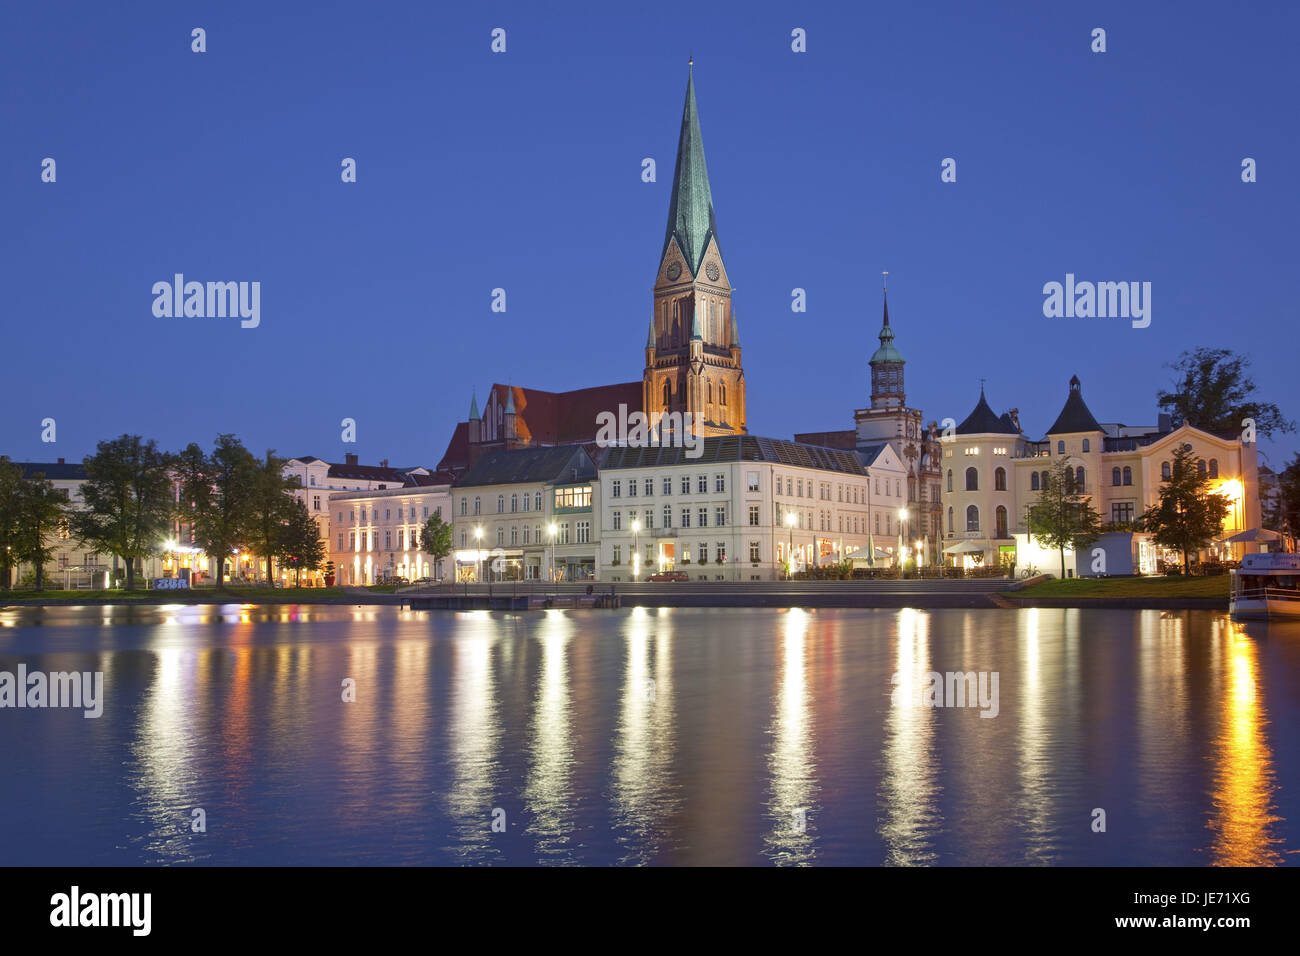 Germany, North Germany, Mecklenburg-West Pomerania, Mecklenburg, Mecklenburg lowland plain full of lakes, Schwerin, - Stock Image